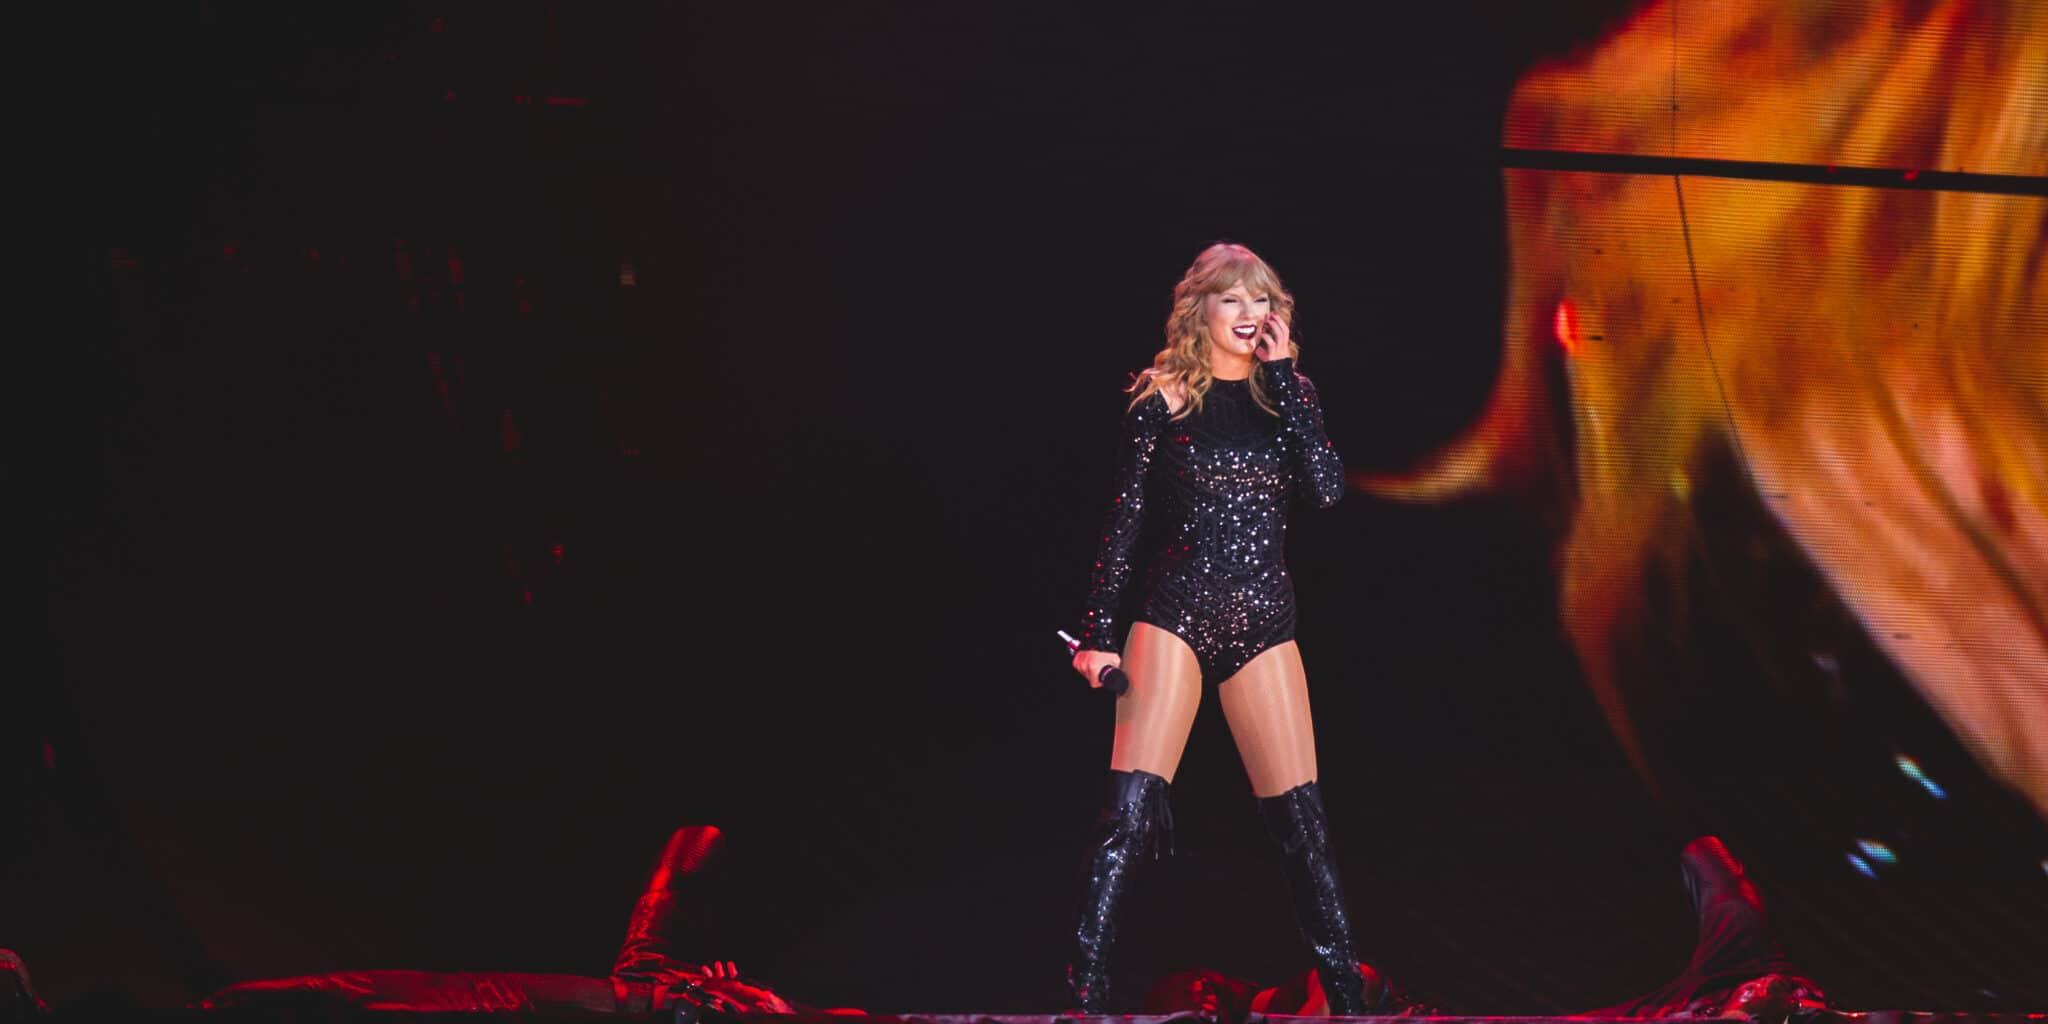 Taylor Swift, Reputation Tour 2018, US Bank Stadium, August 31st 2018, Charli XCX, Camila, Music in Minnesota, Rob Alexander